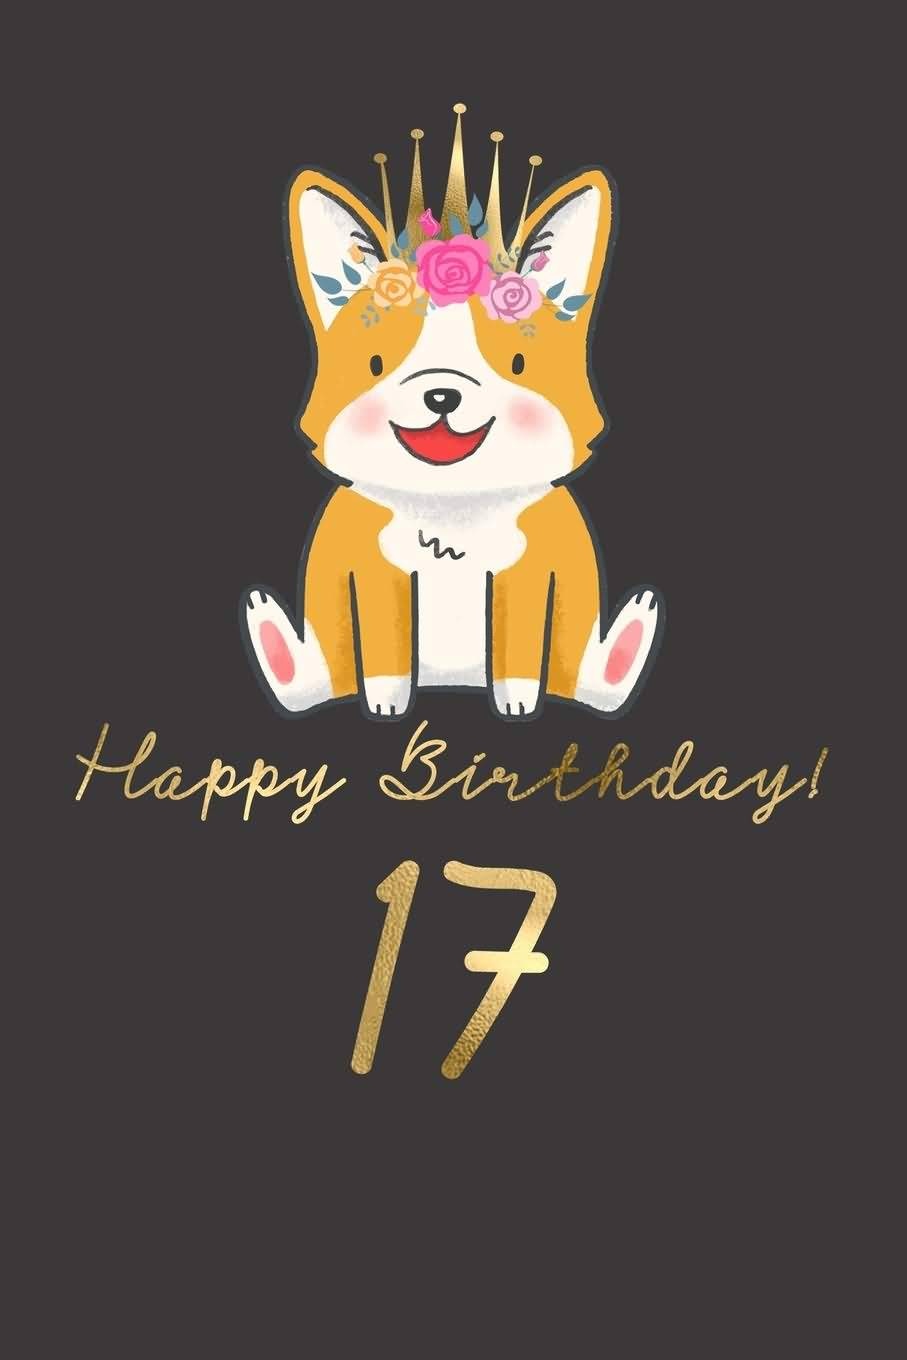 Beautiful Happy 17th Birthday Wishes Image For Children